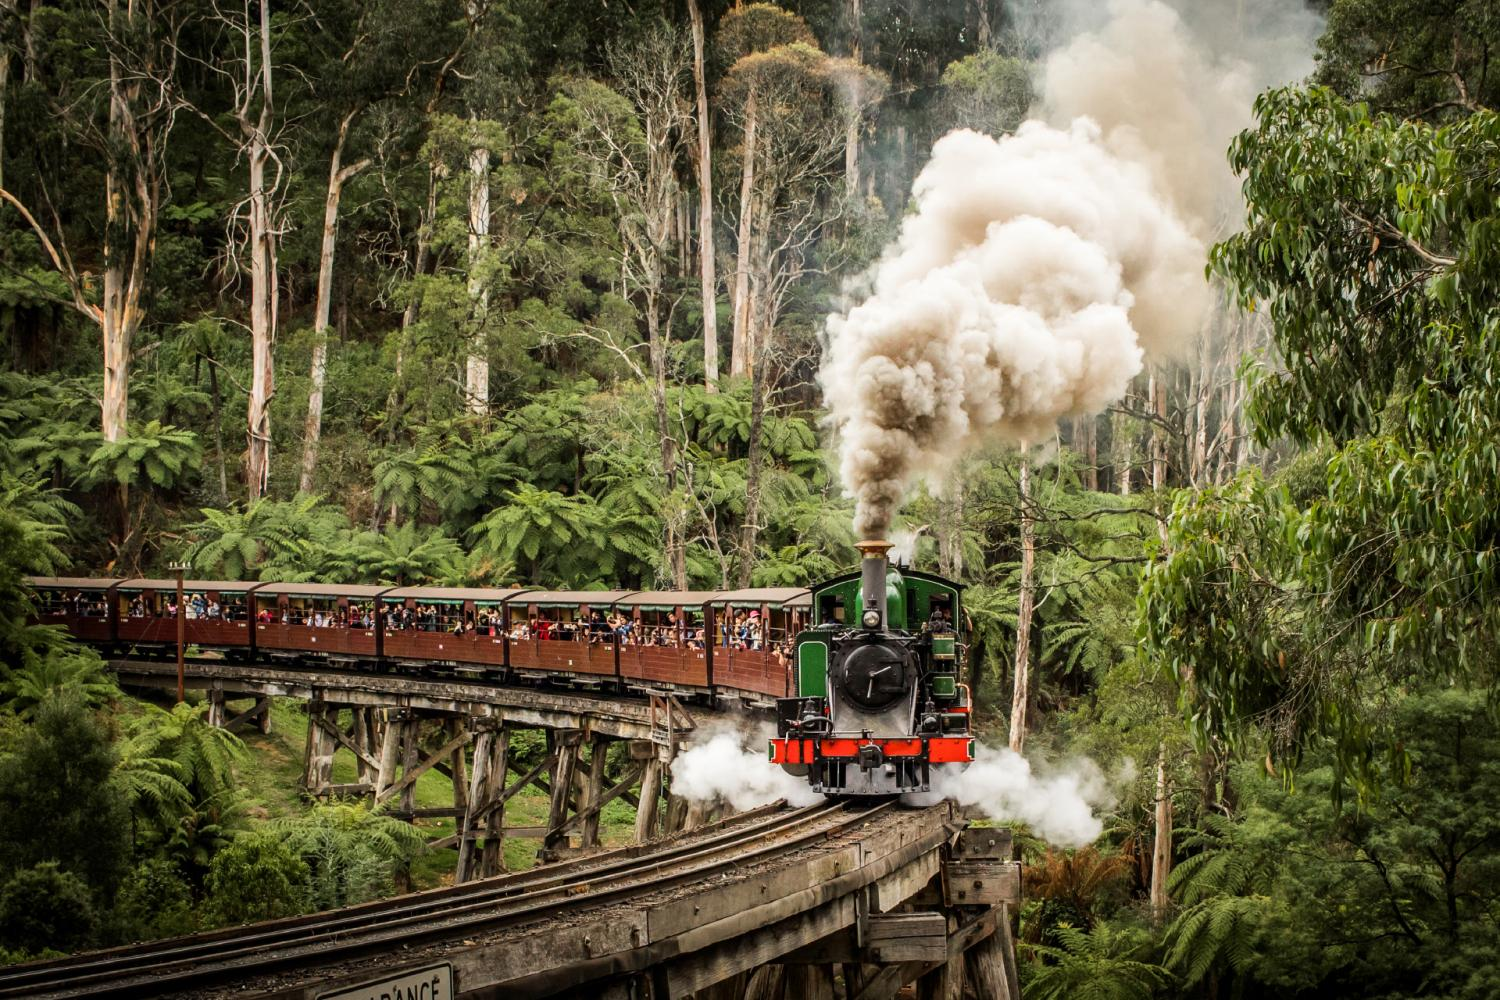 Penguin Parade Tour & Puffing Billy Train Ride From Melbourne